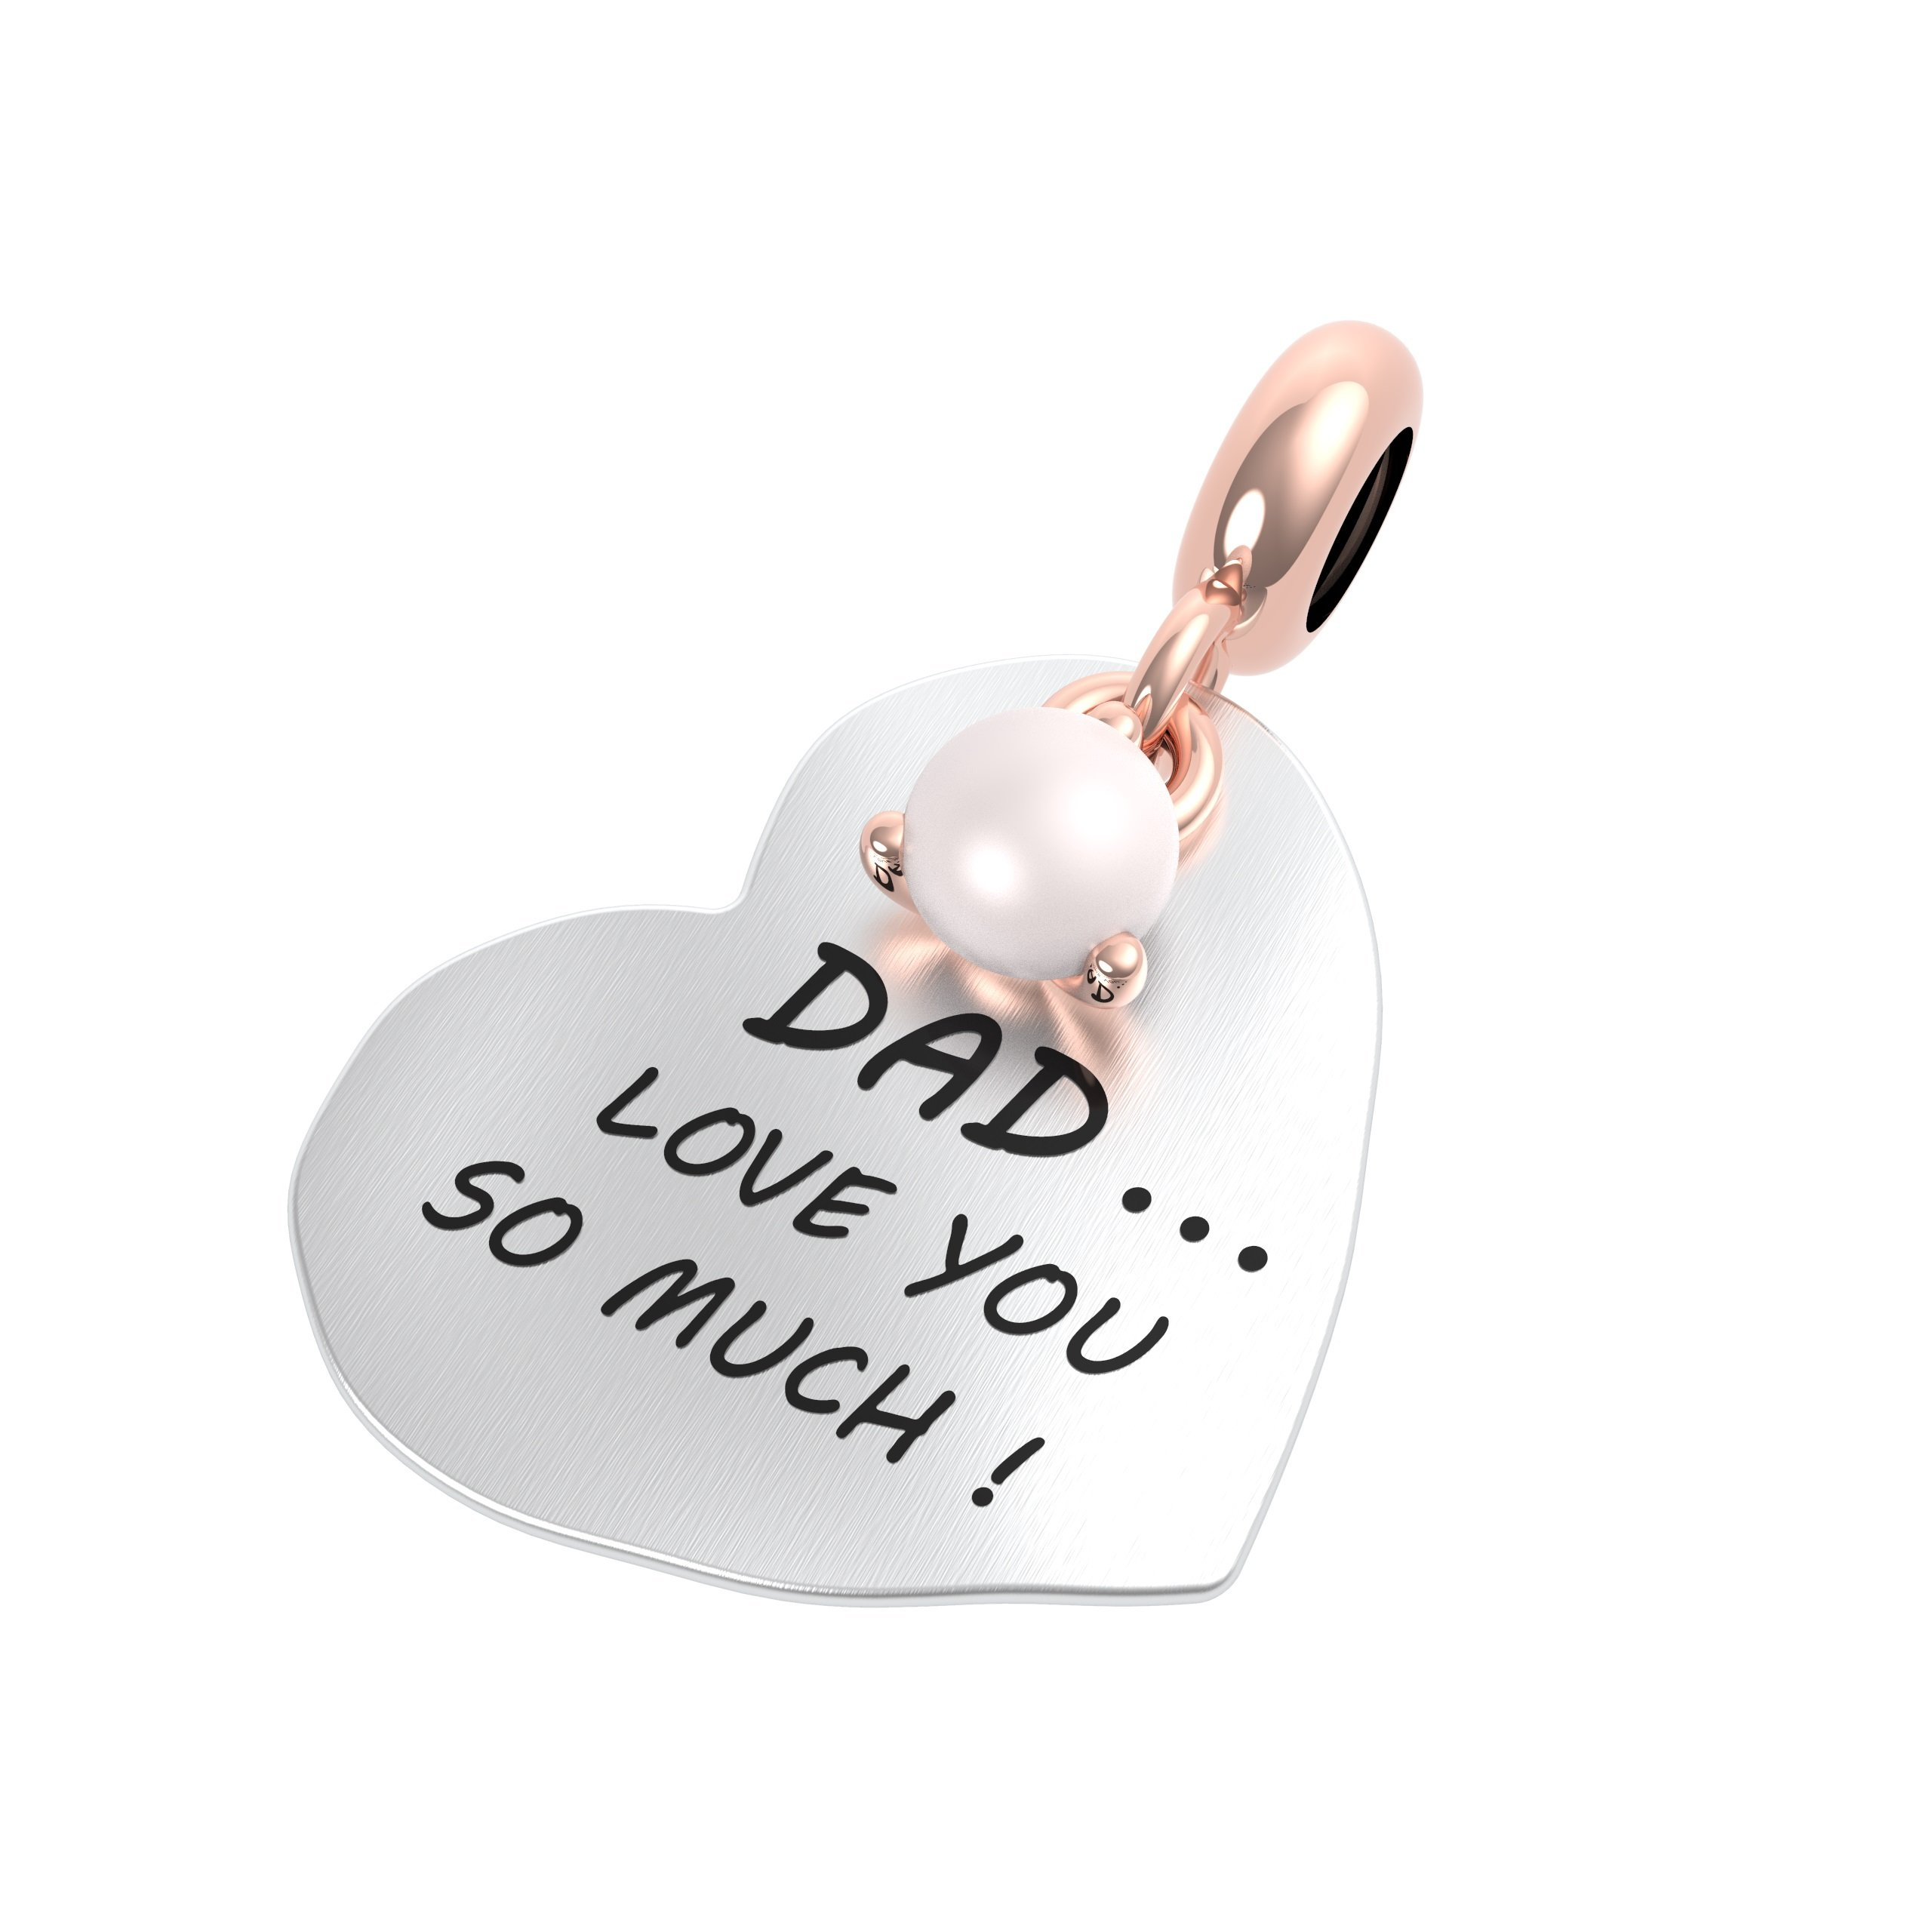 Dad... Love you so much!